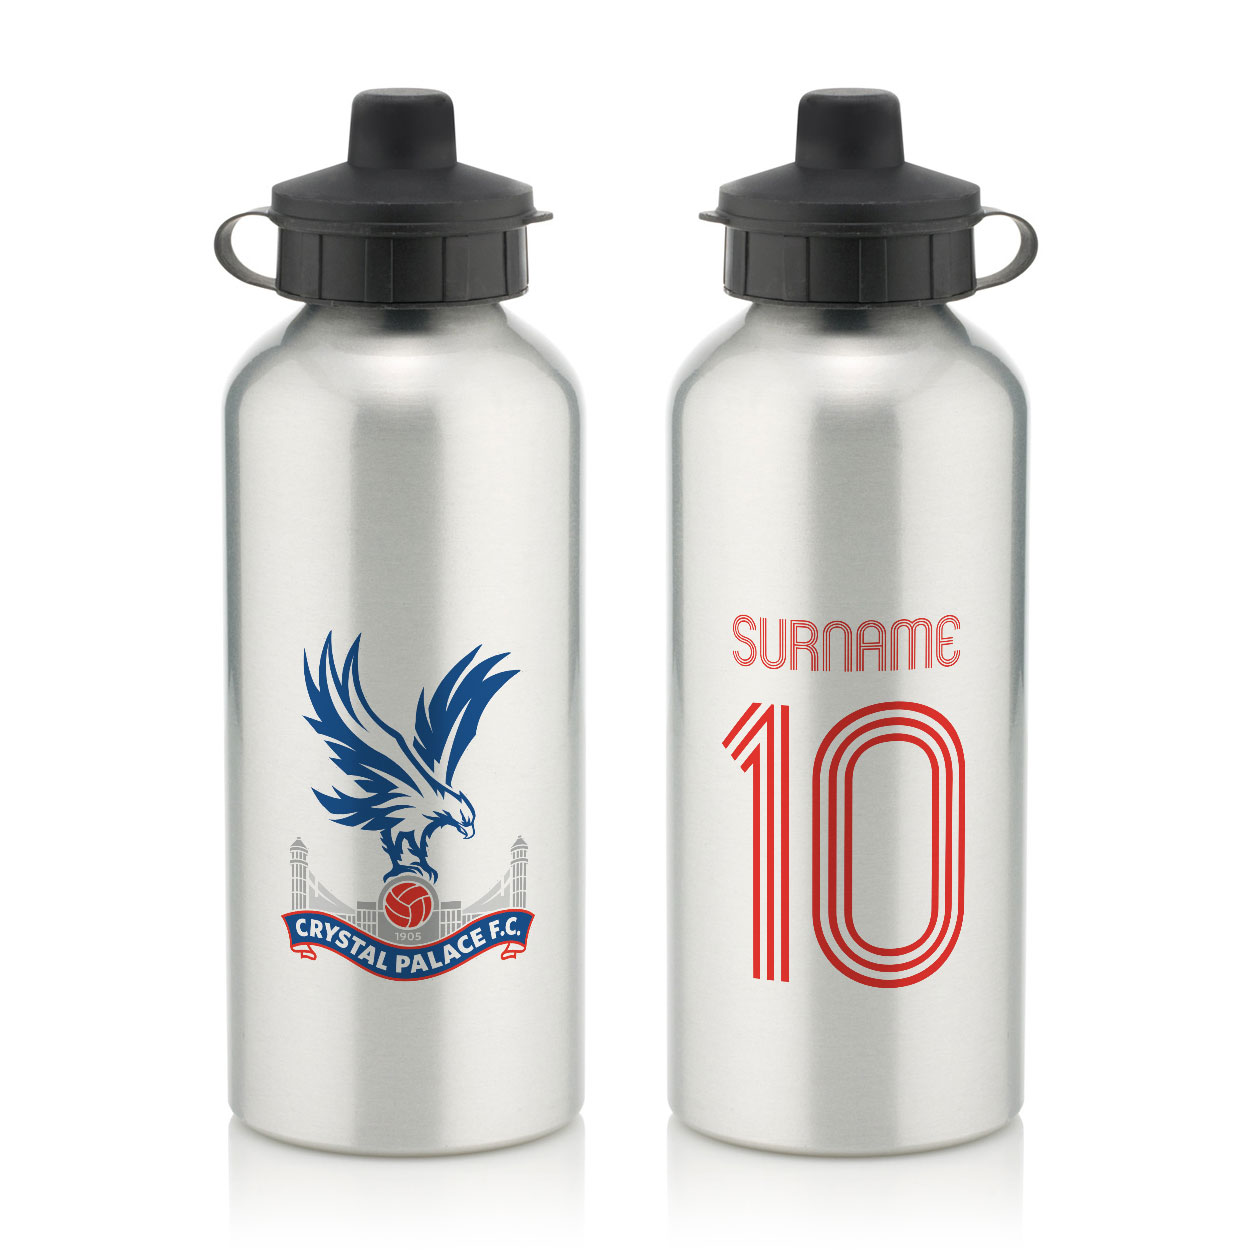 Crystal Palace FC Retro Shirt Water Bottle